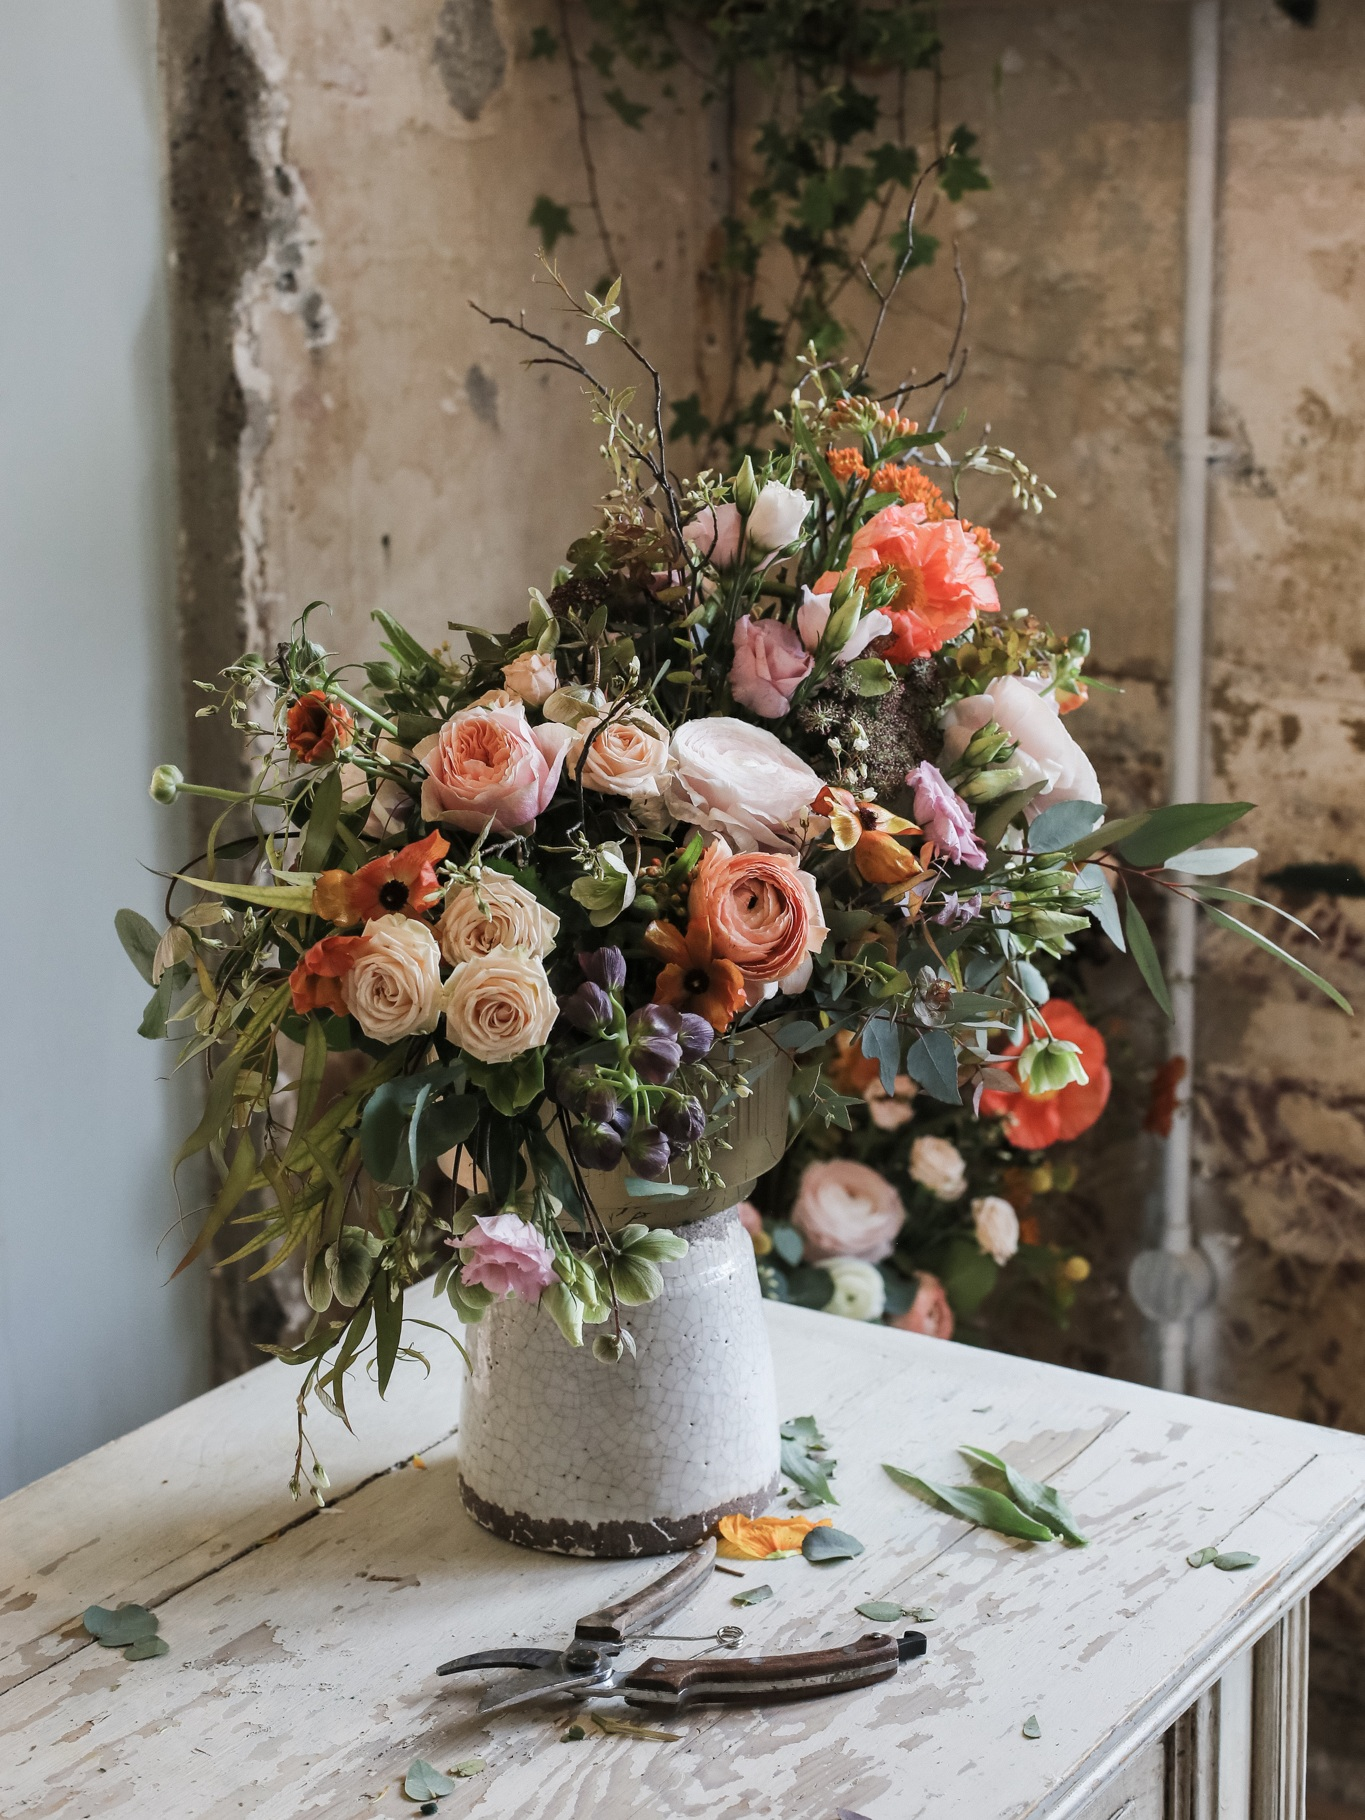 Autumnal Workshop - We held a floristry workshop for those wanting to create a beautiful autumnal arrangements with their own hands and get inspired. All attendees took home a beautiful composition and enjoyed a wonderful afternoon with an amazing team. Read full story…